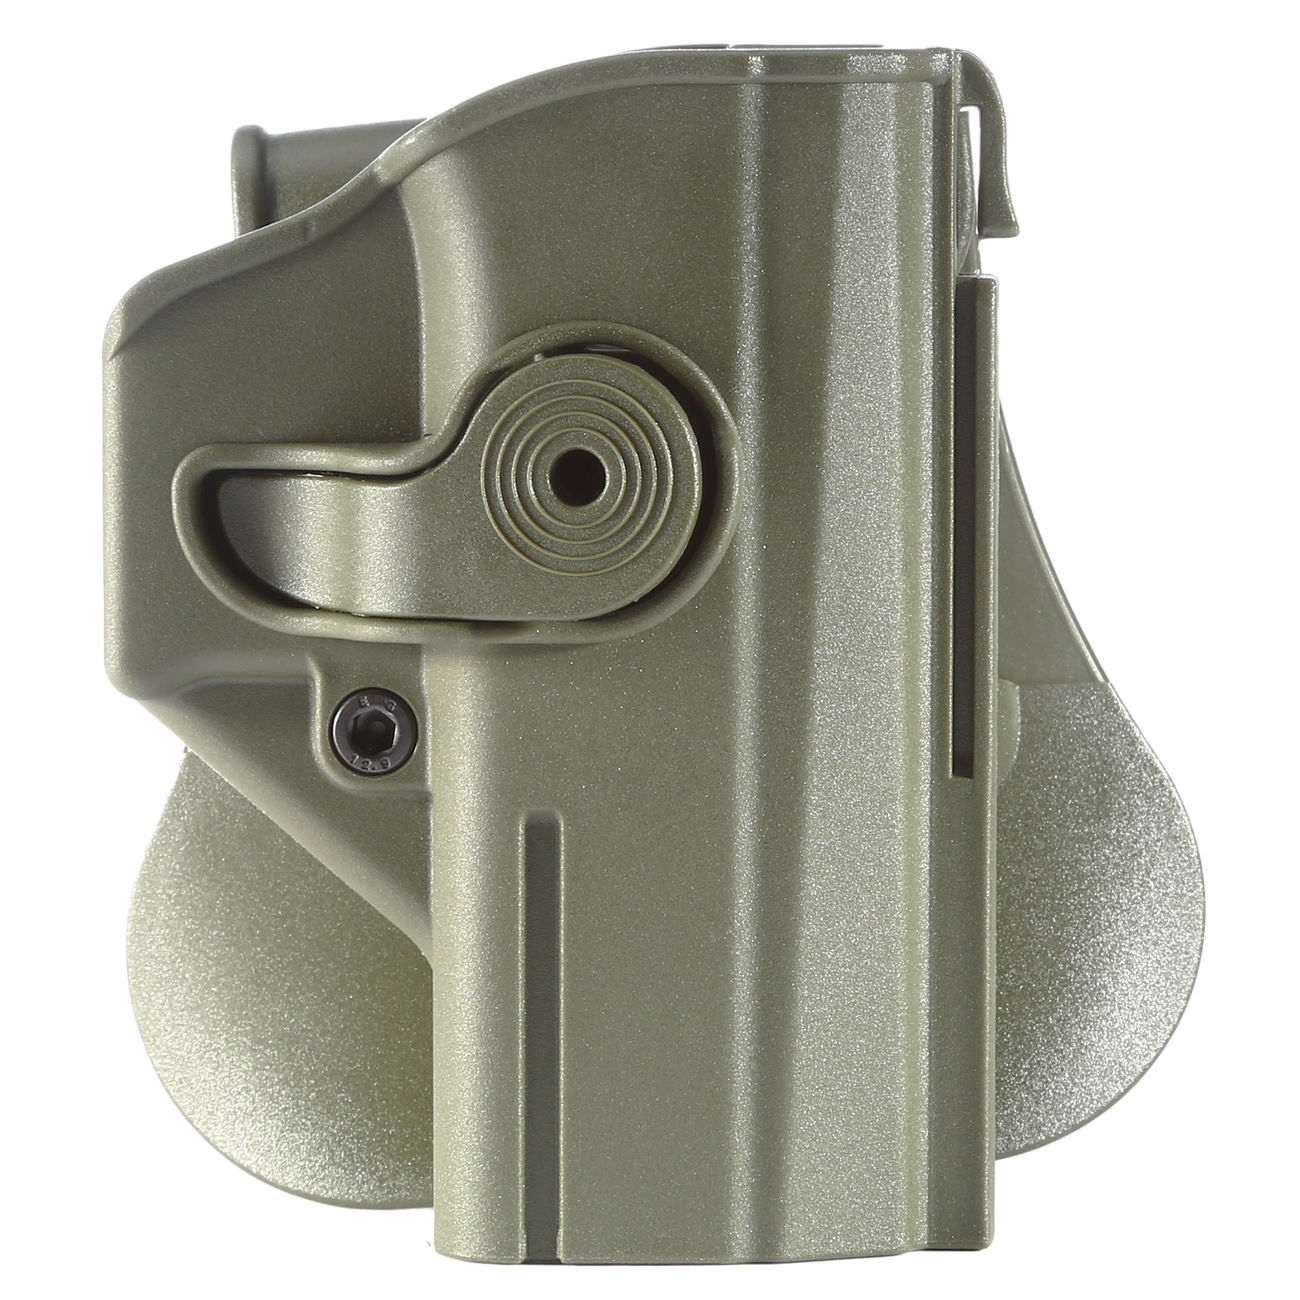 IMI Defense Level 2 Holster Kunststoff Paddle für CZ P-07 OD 0